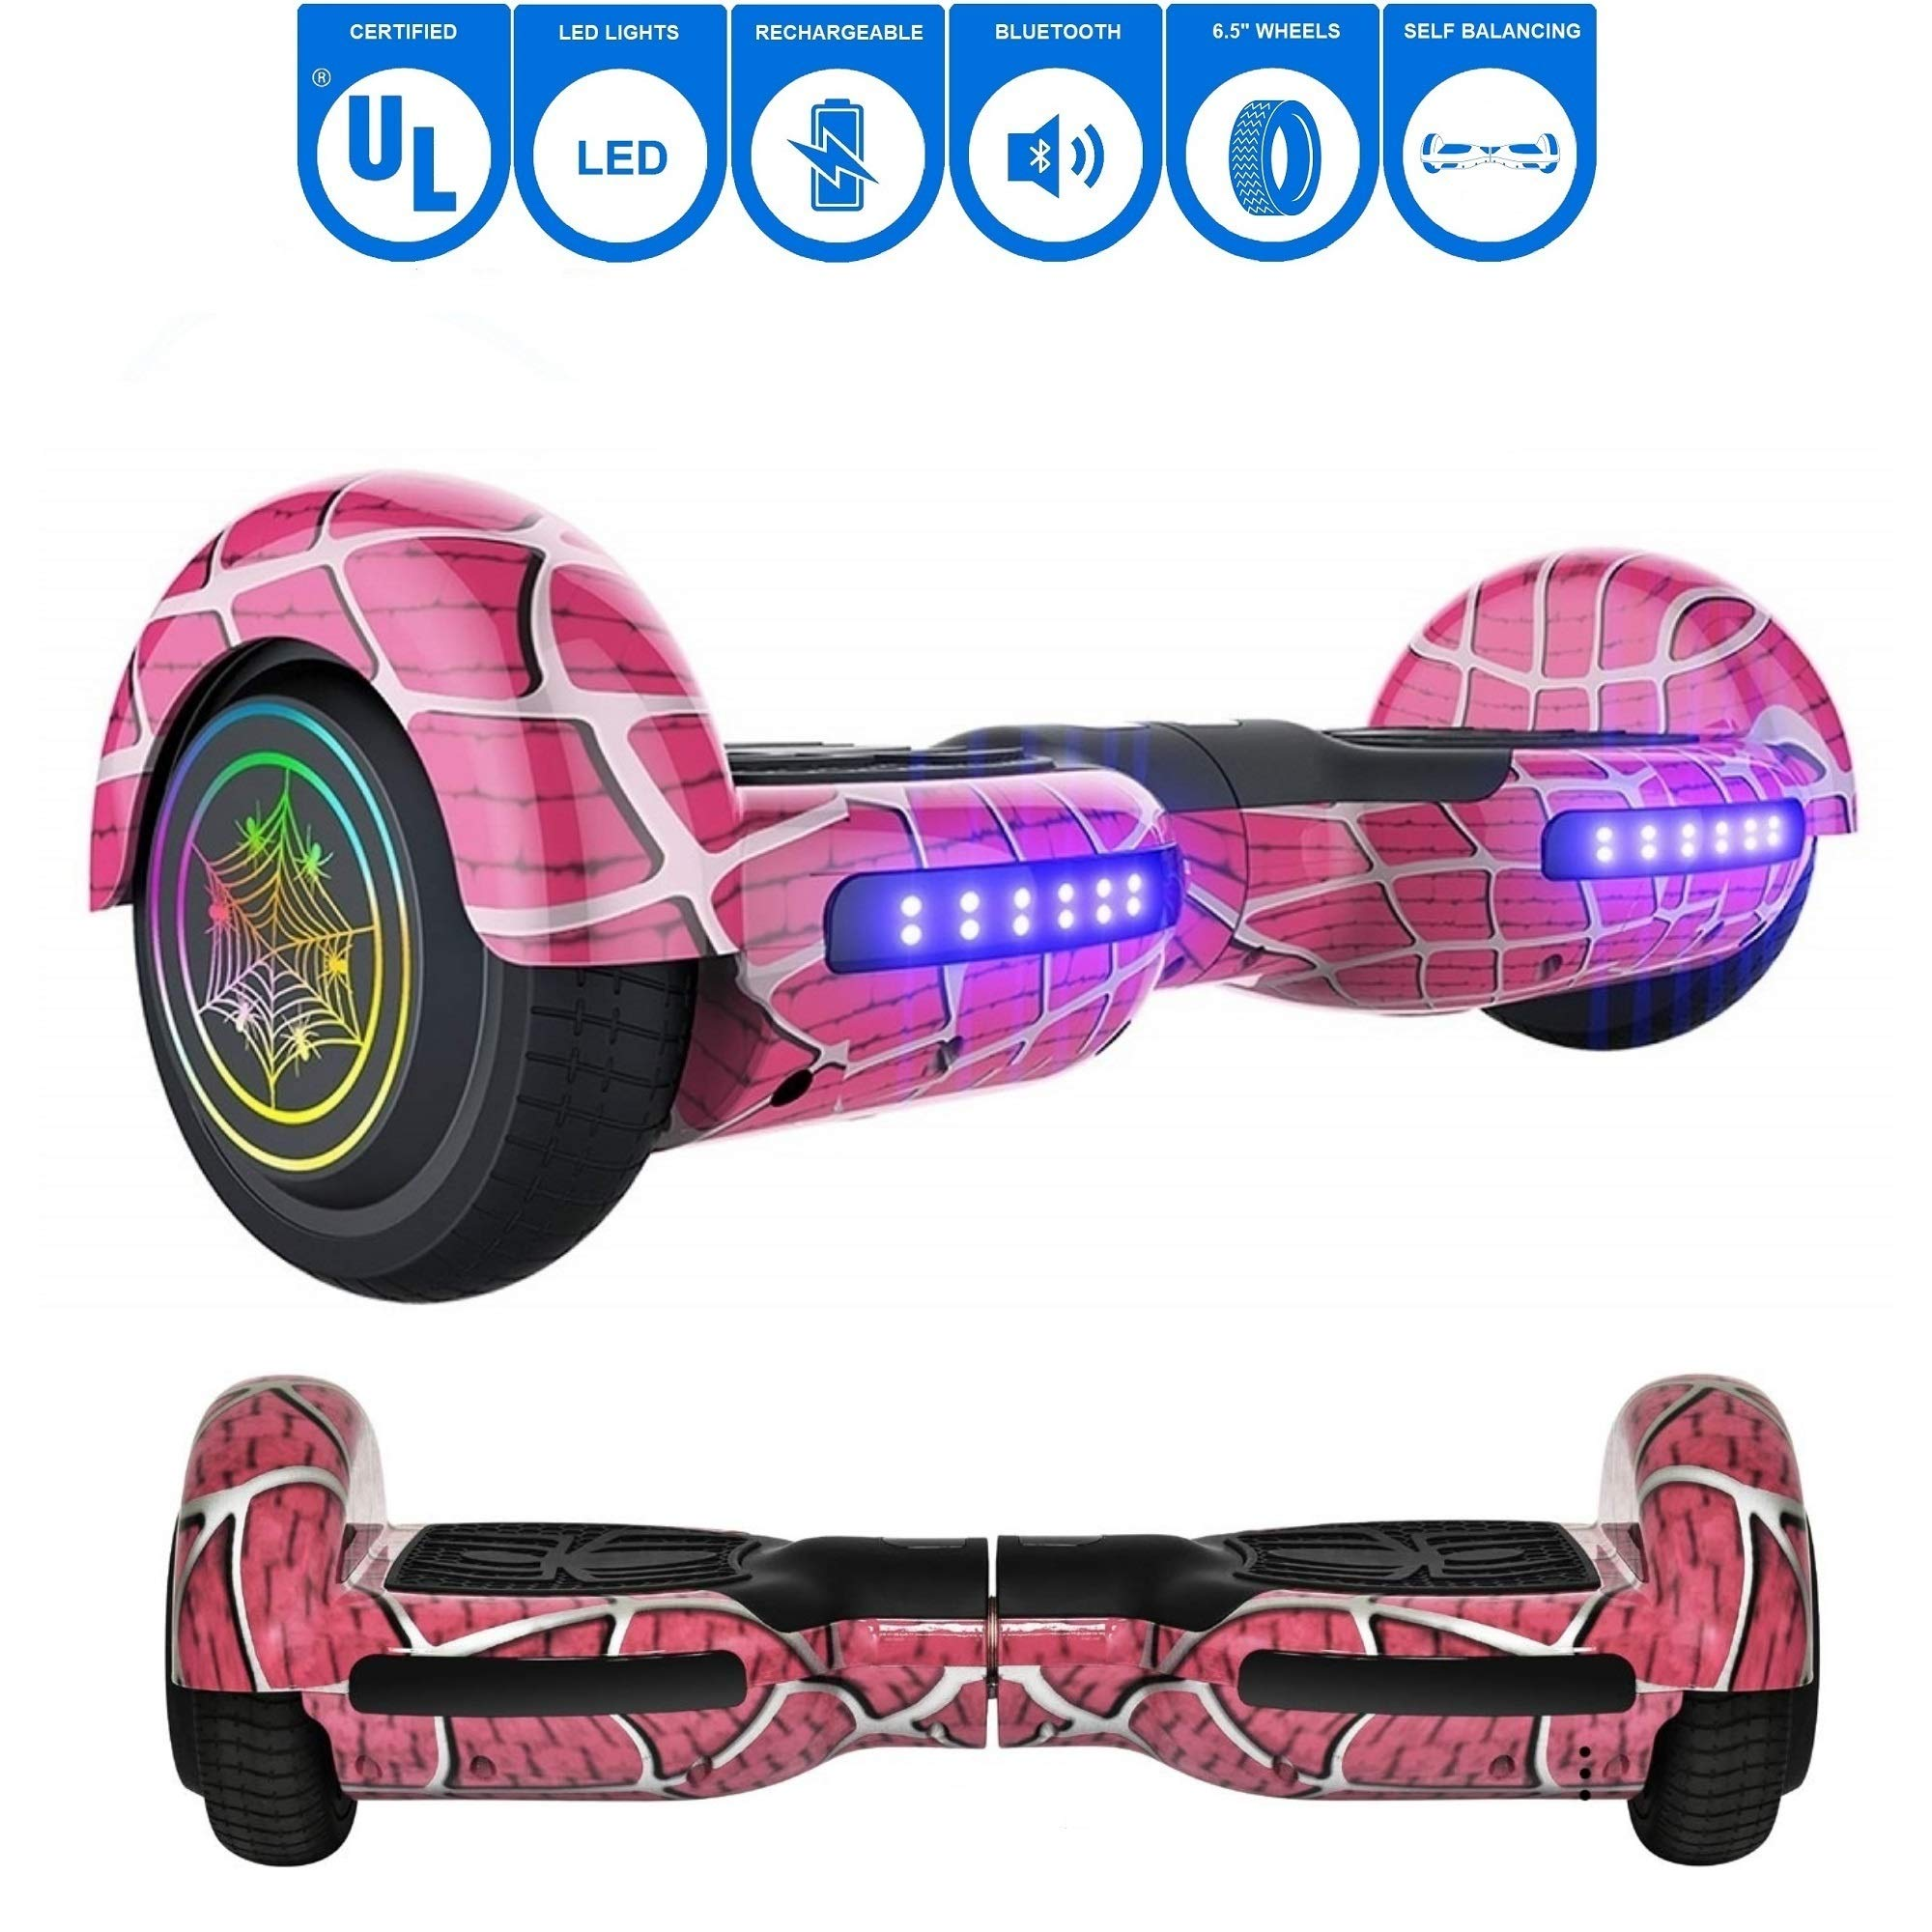 NHT 6.5'' inch Aurora Hoverboard Self Balancing Scooter with Colorful LED Wheels and Lights - UL2272 Certified Carbon Fiber/Spider/Built-in Bluetooth Speaker Available (Spider Pink)